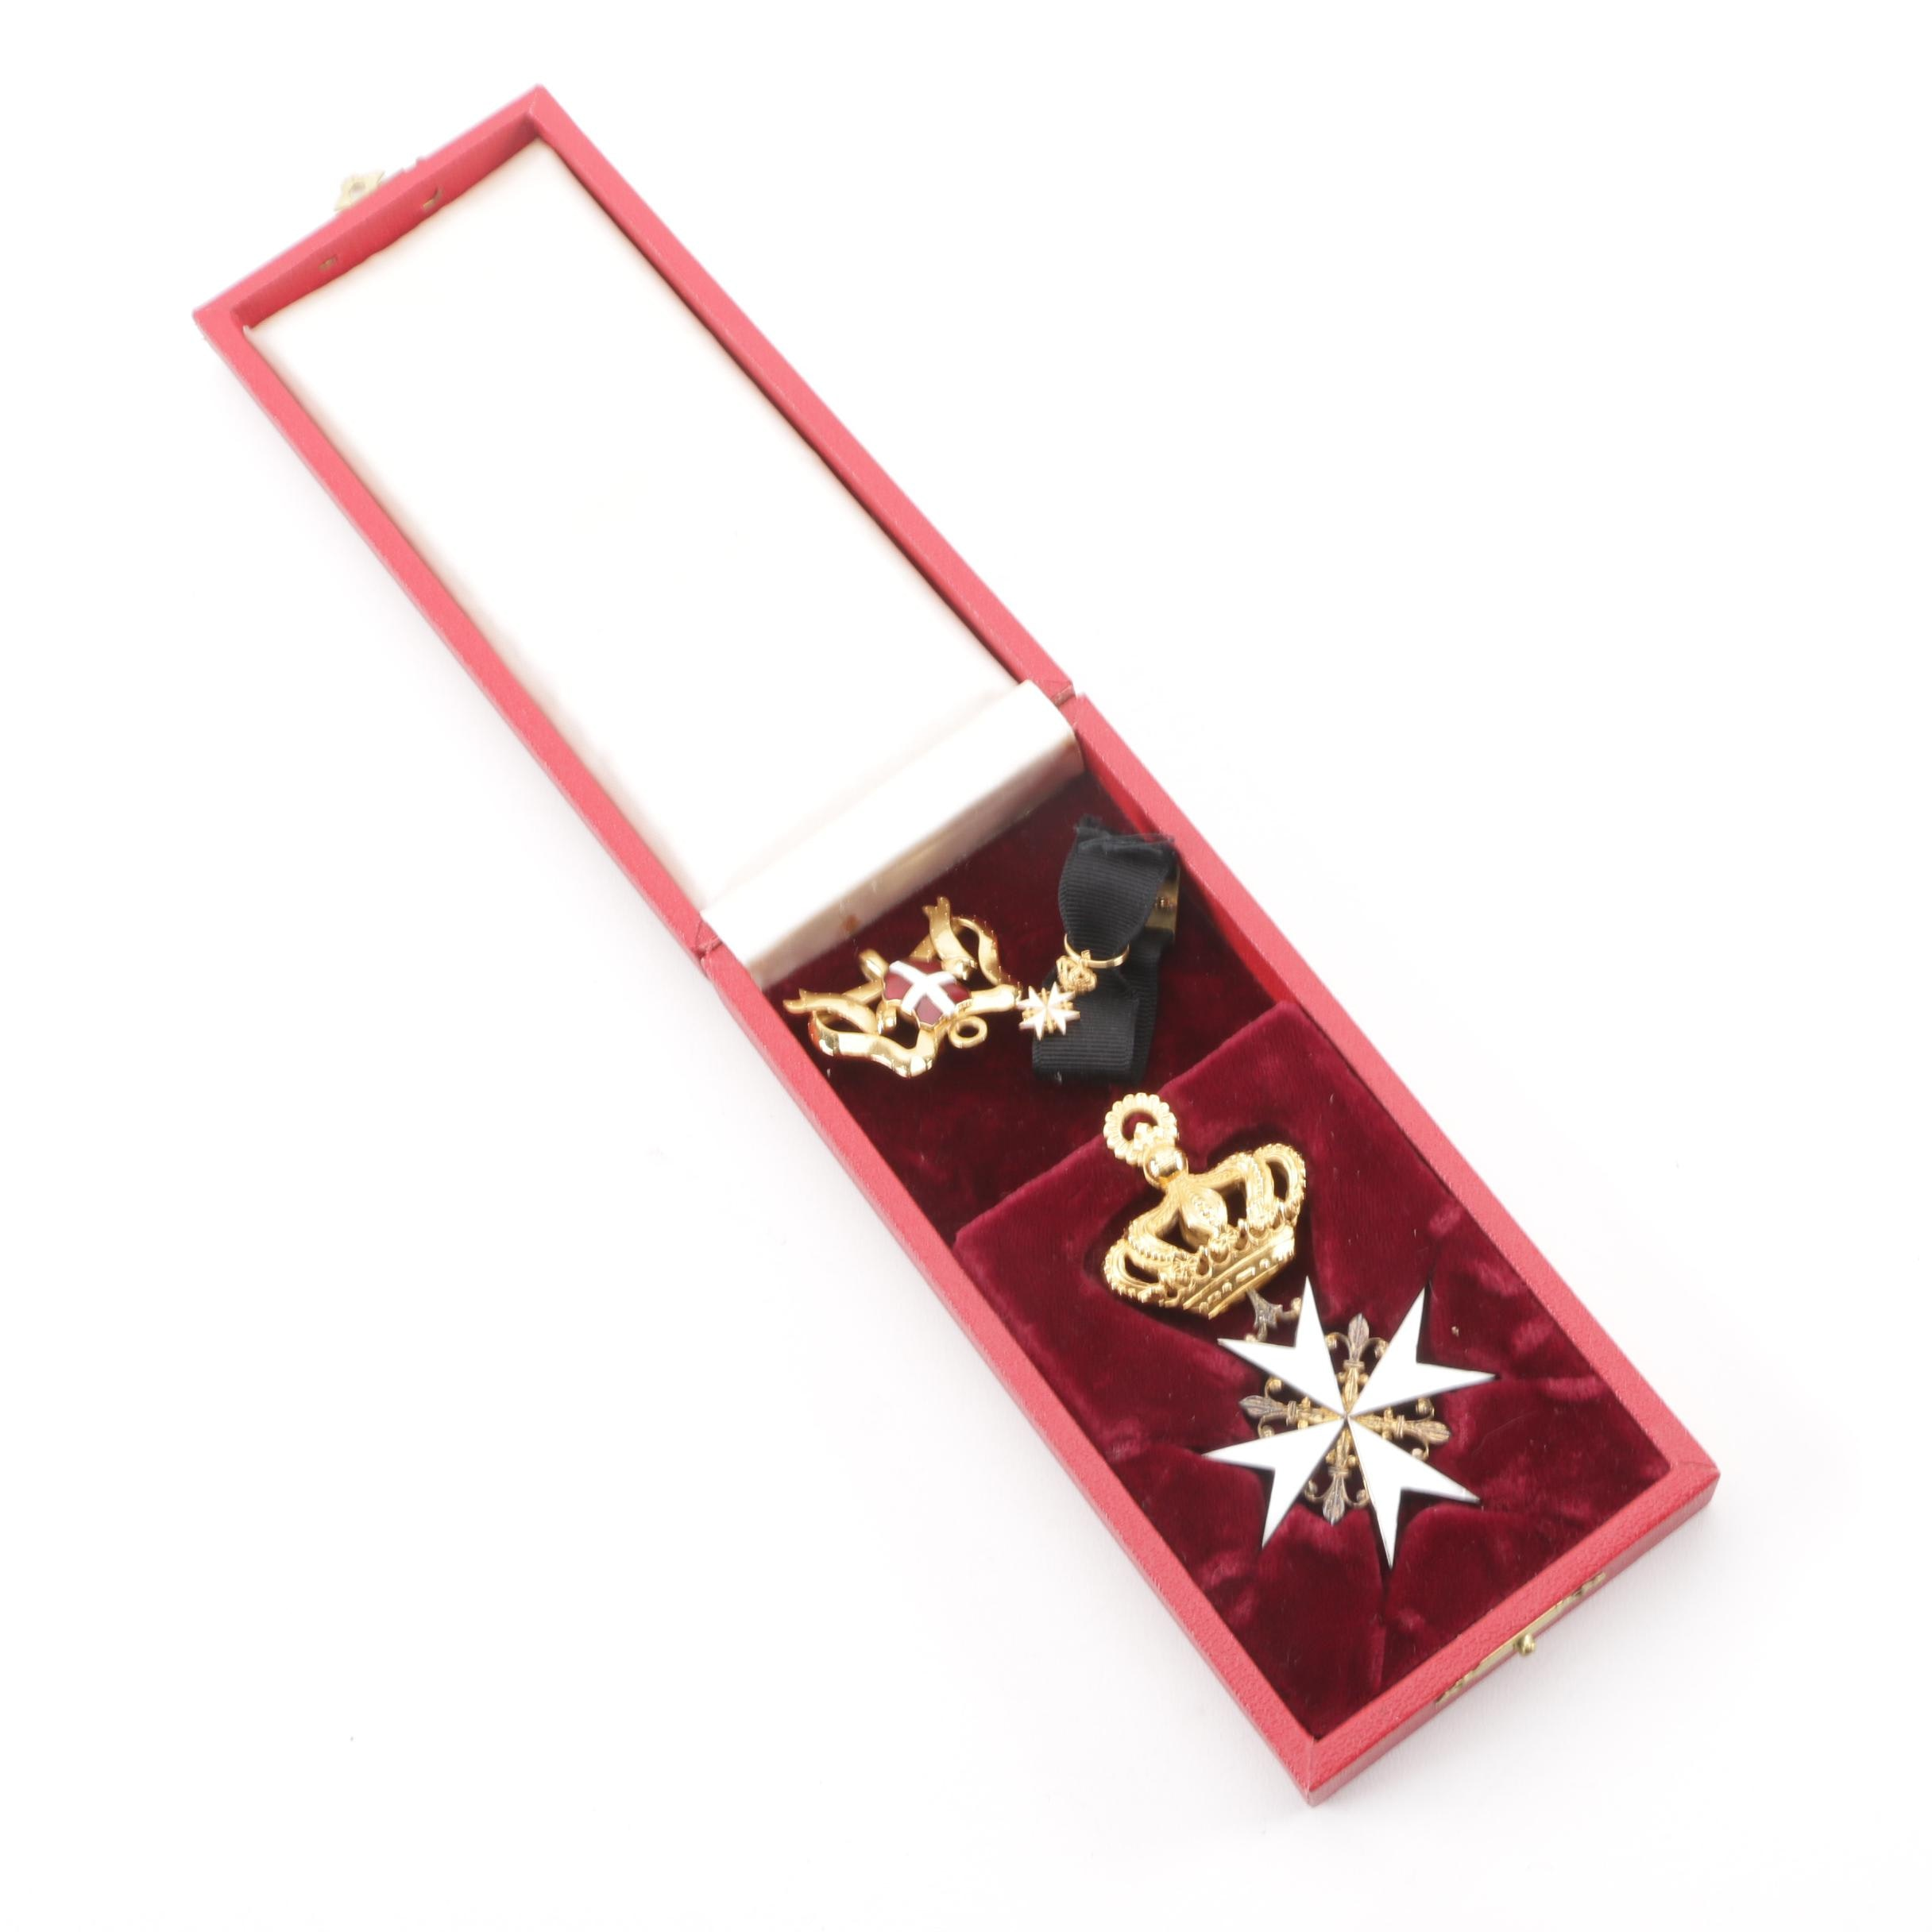 Order Knights of Malta Gilt Metal and Enameled Neck Badge